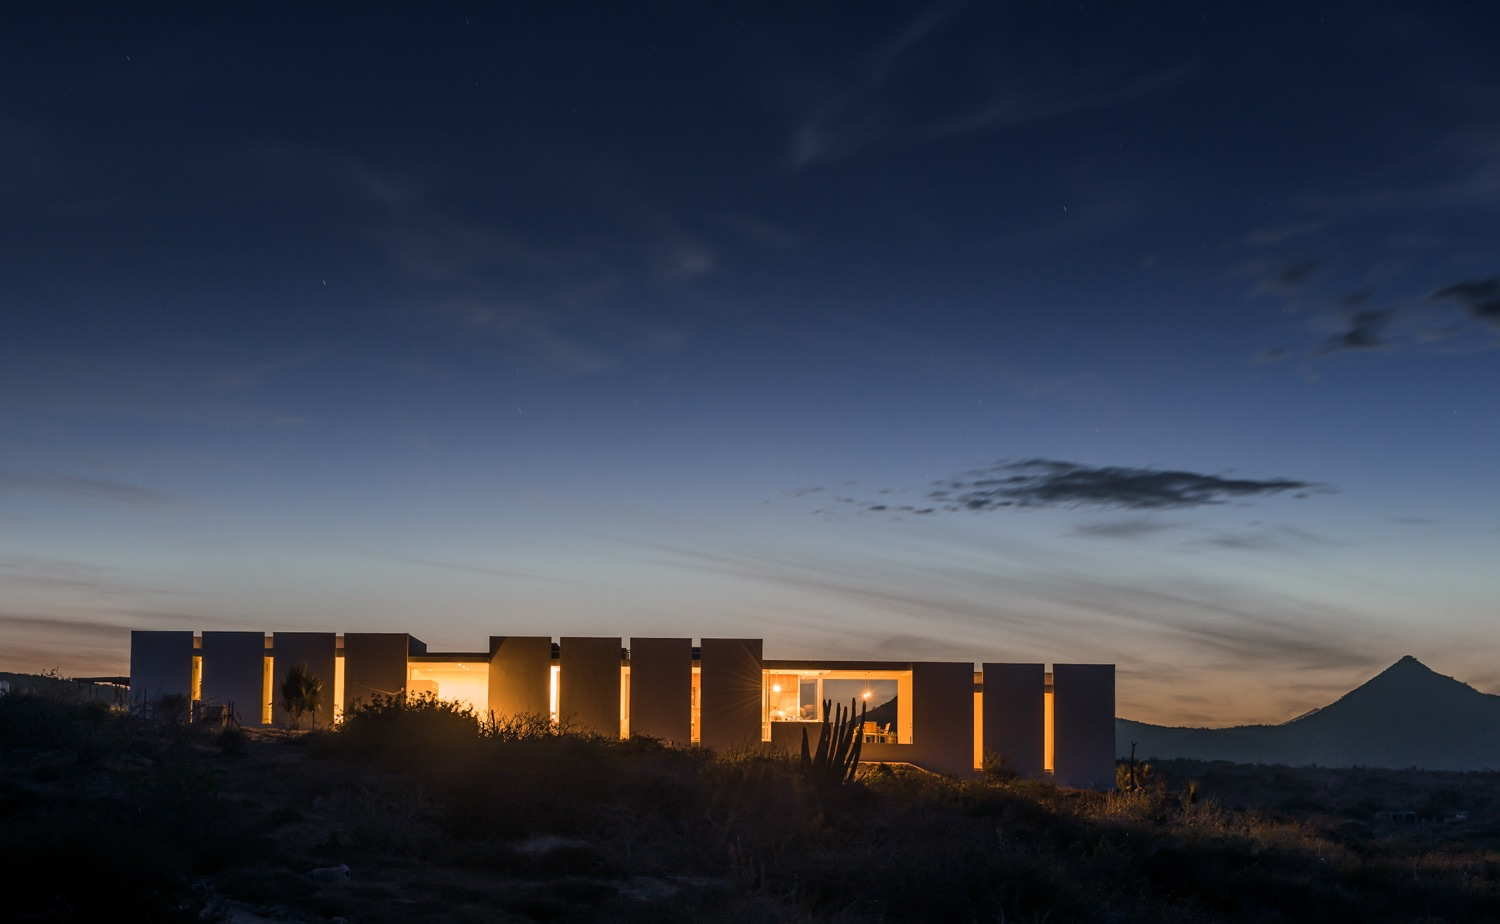 The night view of the house in desert